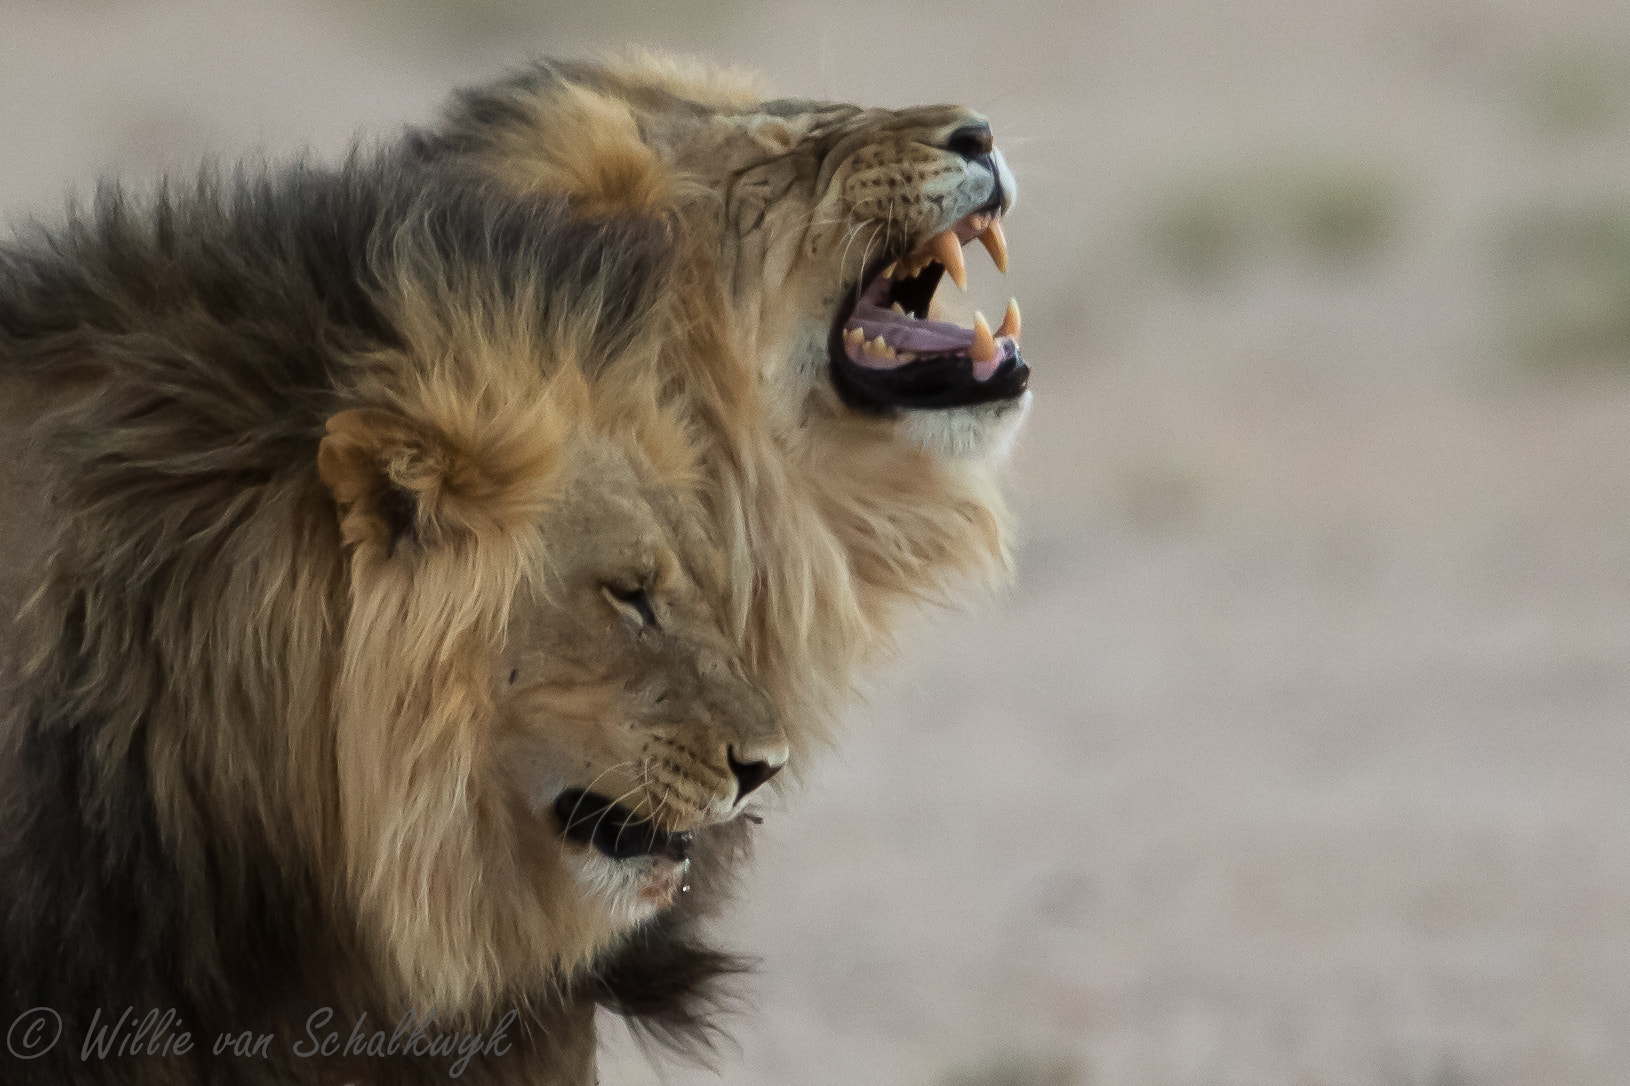 Photograph Twin Kings by Willie van Schalkwyk on 500px